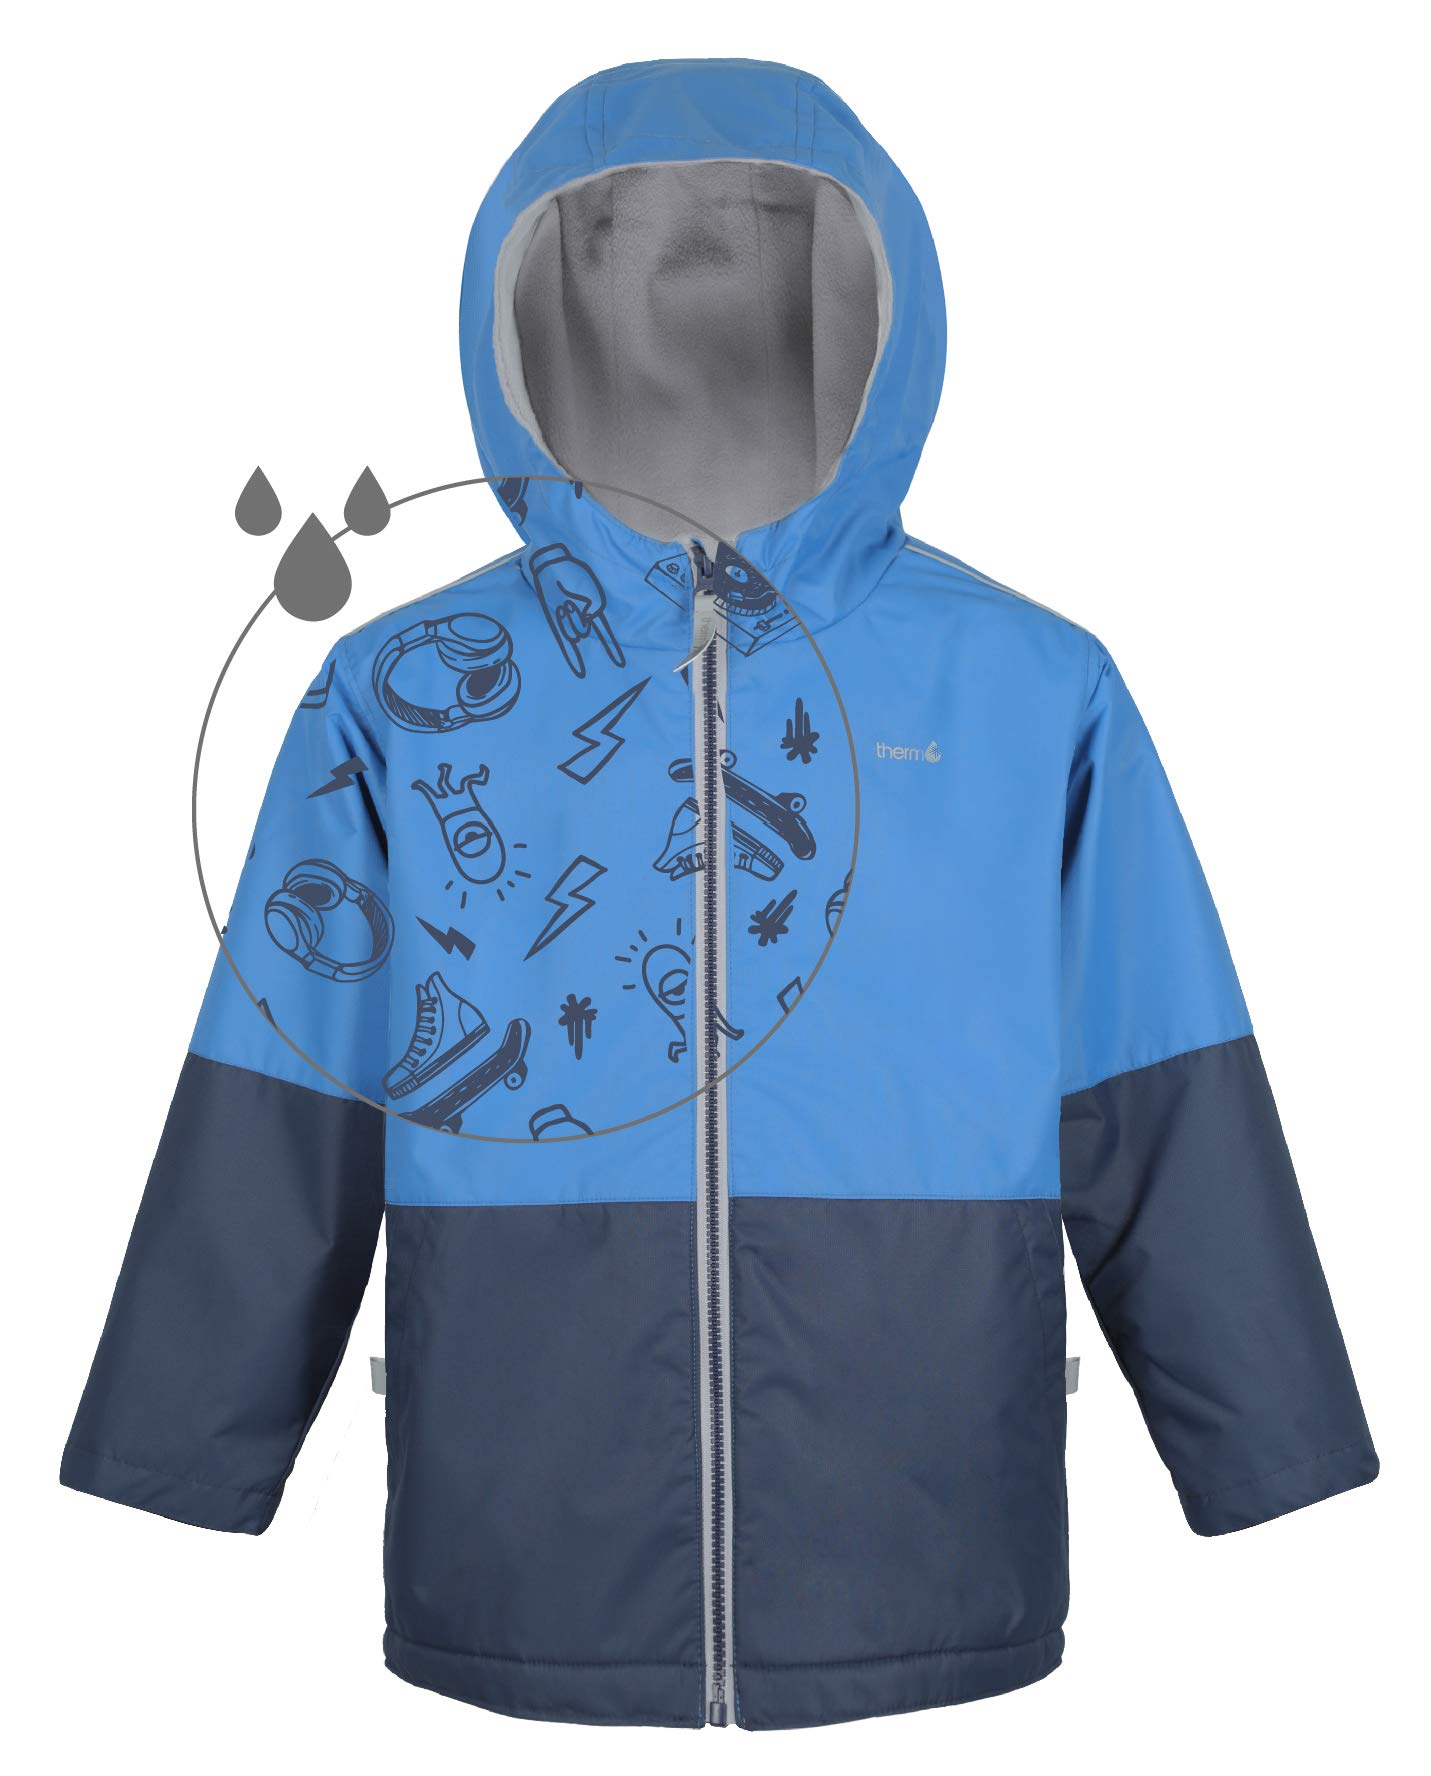 Therm Boys Rain Jacket, Lightweight Winter Raincoat w Magic Pattern - Fleece Lined - Toddler Kids Youth Clothes (2, Blue) by Therm